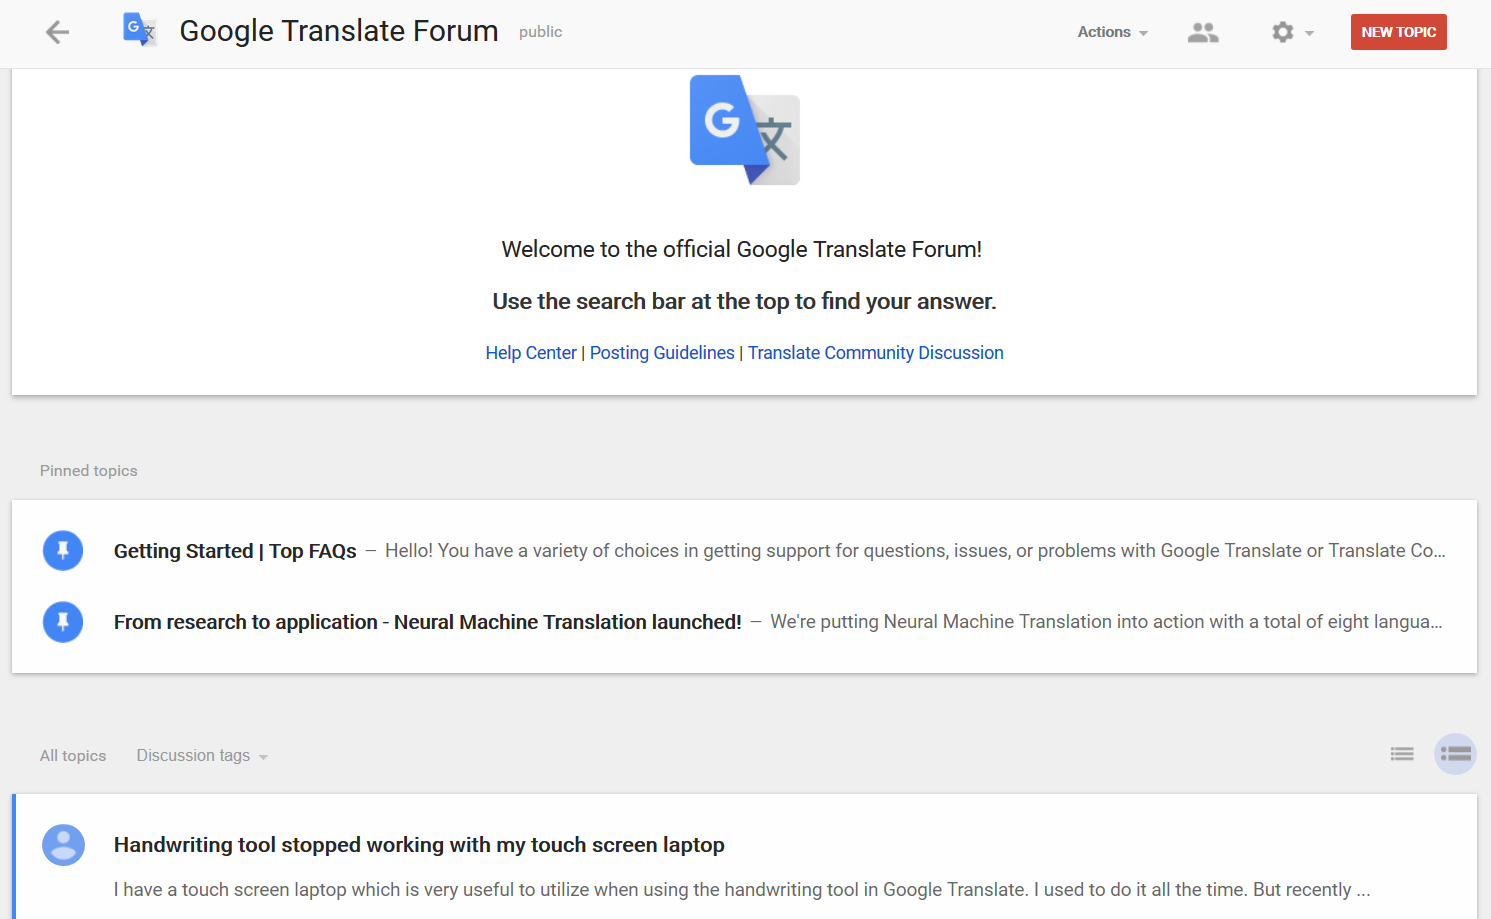 Increase the Quality of Translation Crowdsourcing/Community